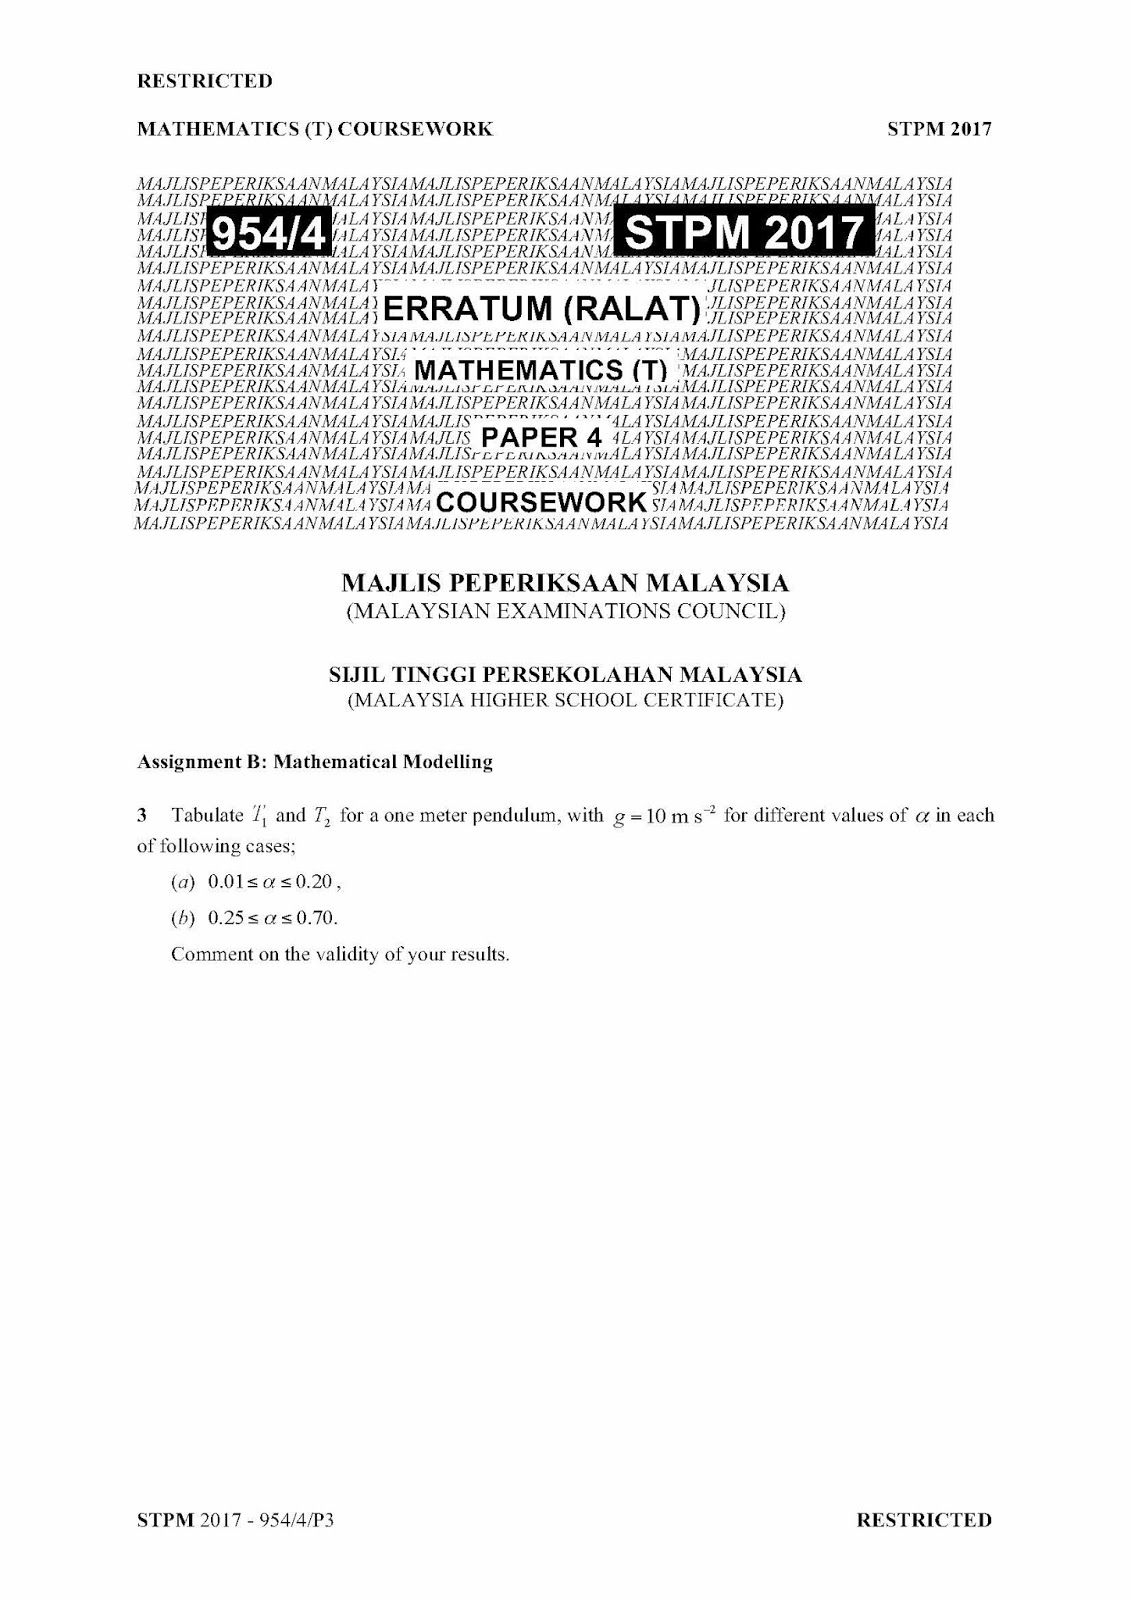 math t coursework stpm 2017